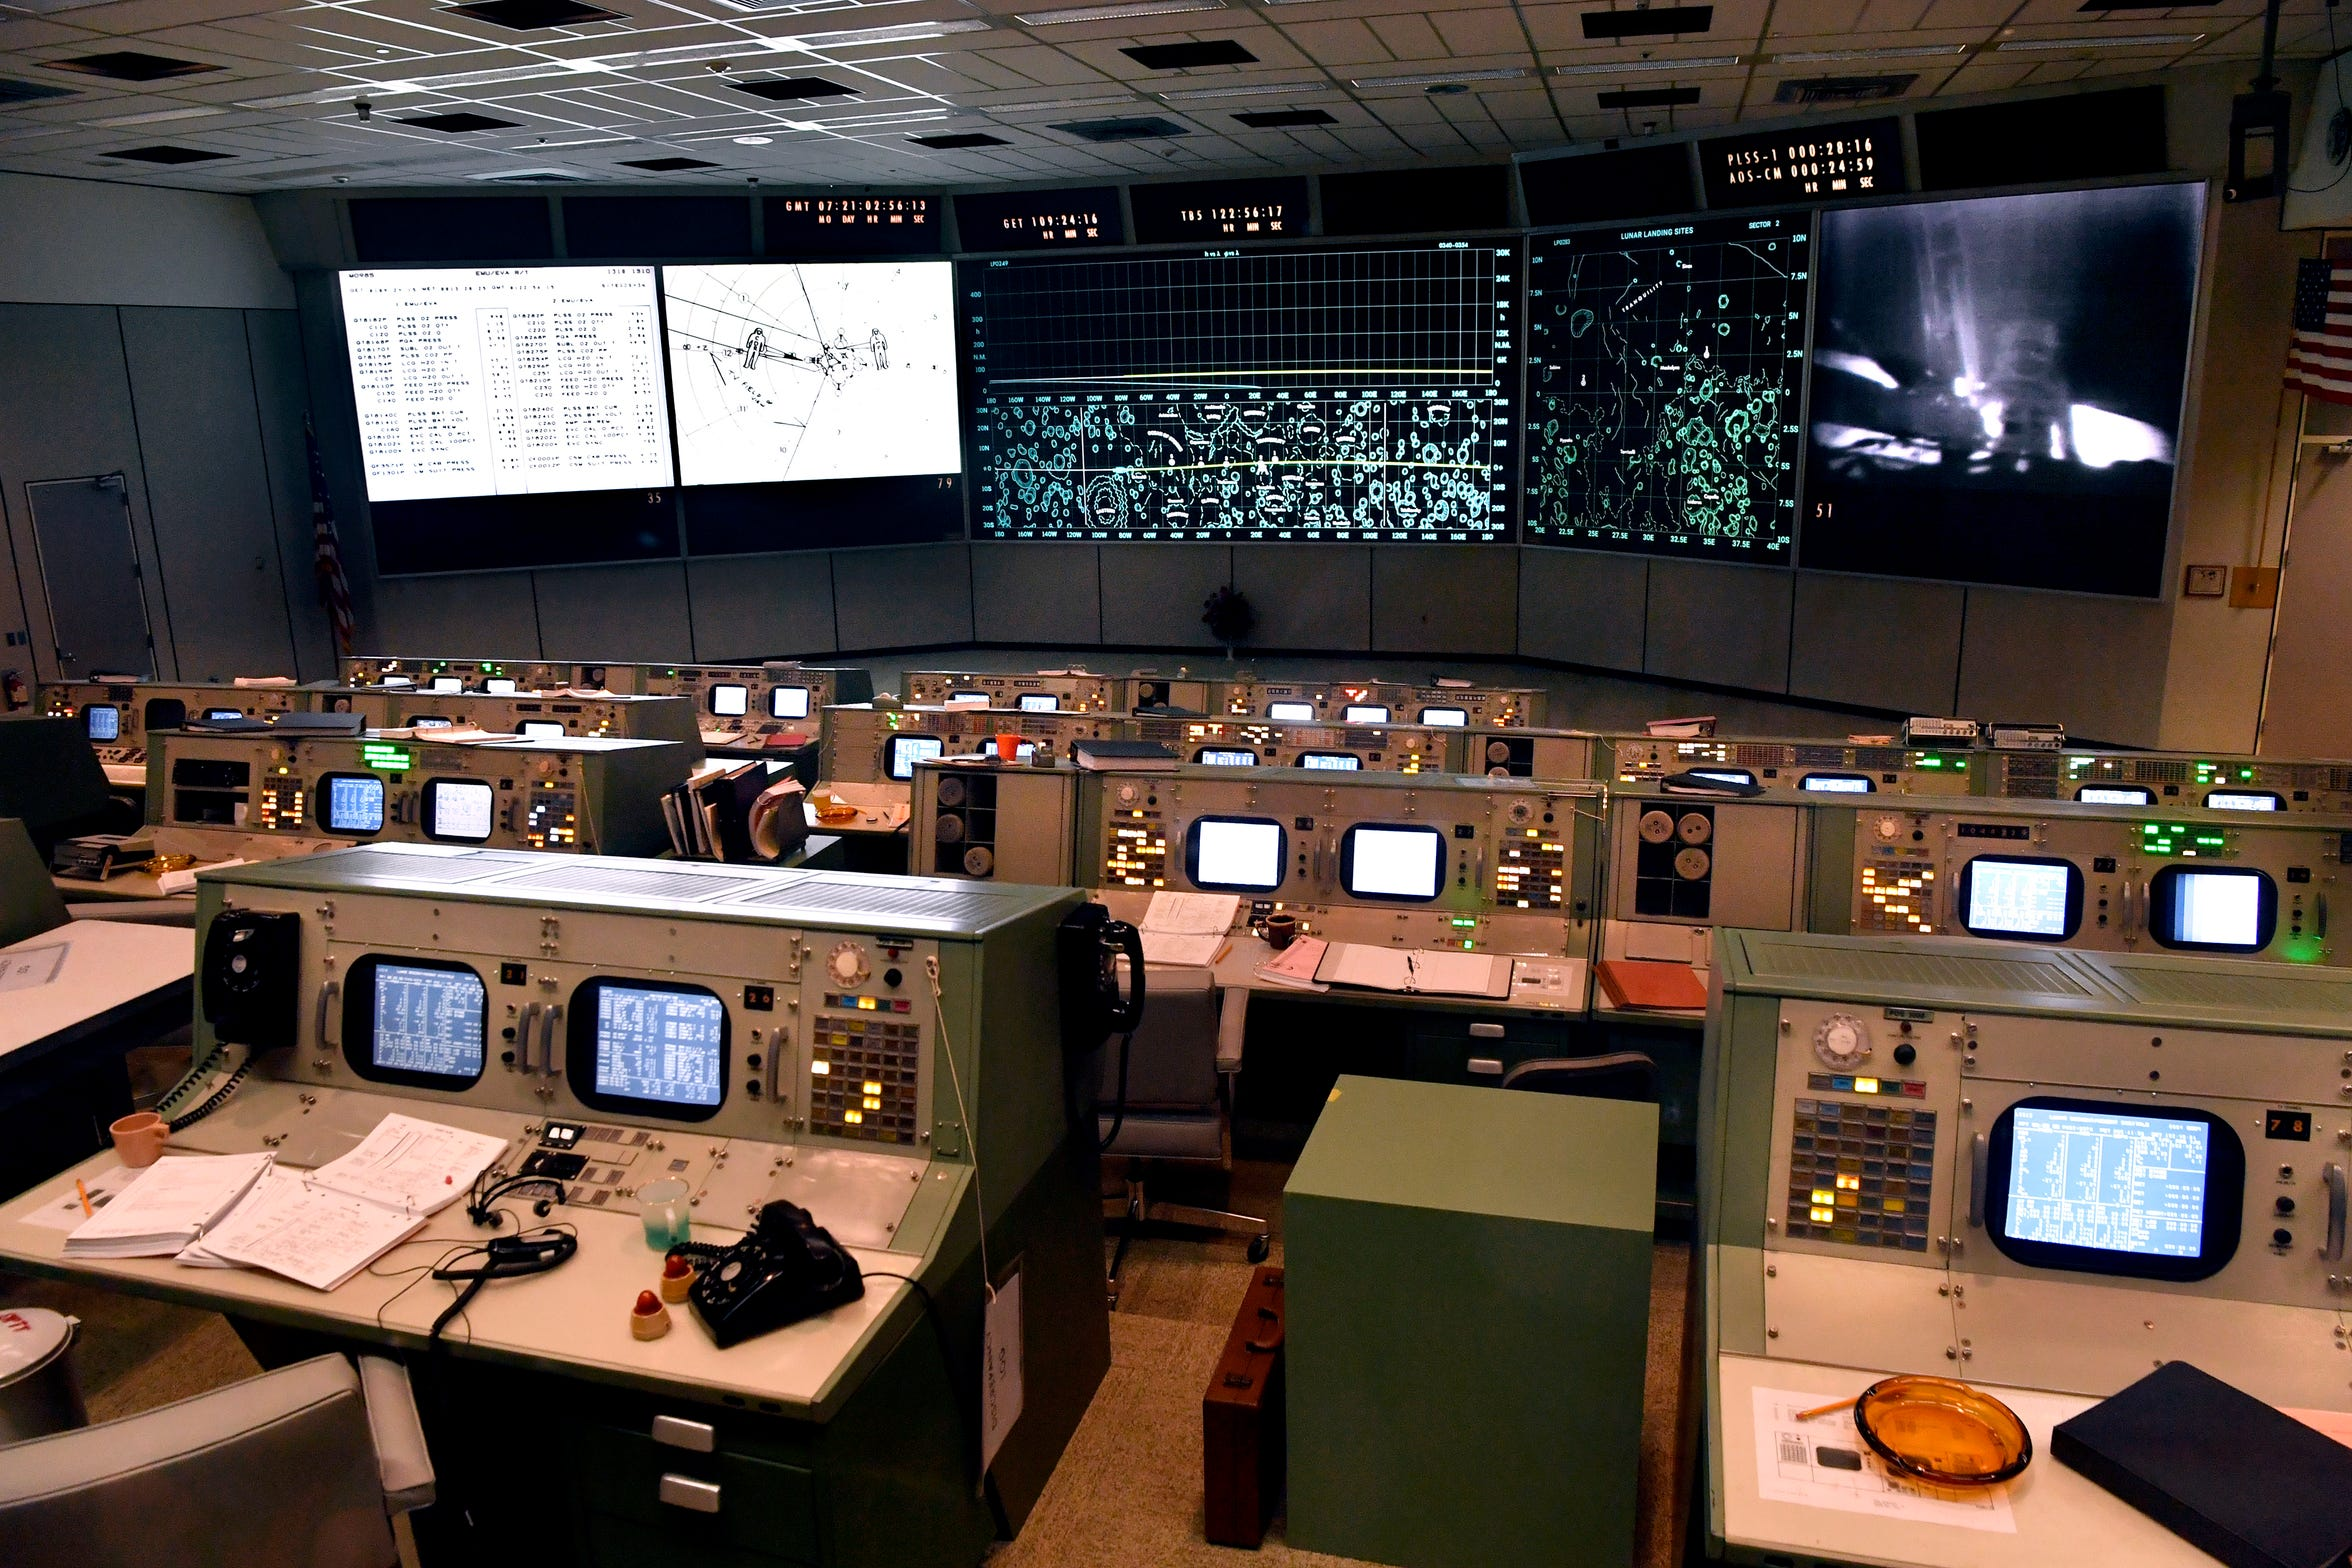 The Apollo Mission Control Center at Johnson Space Center. The National Historic Landmark was restored for $5 million and opened at the beginning of July.